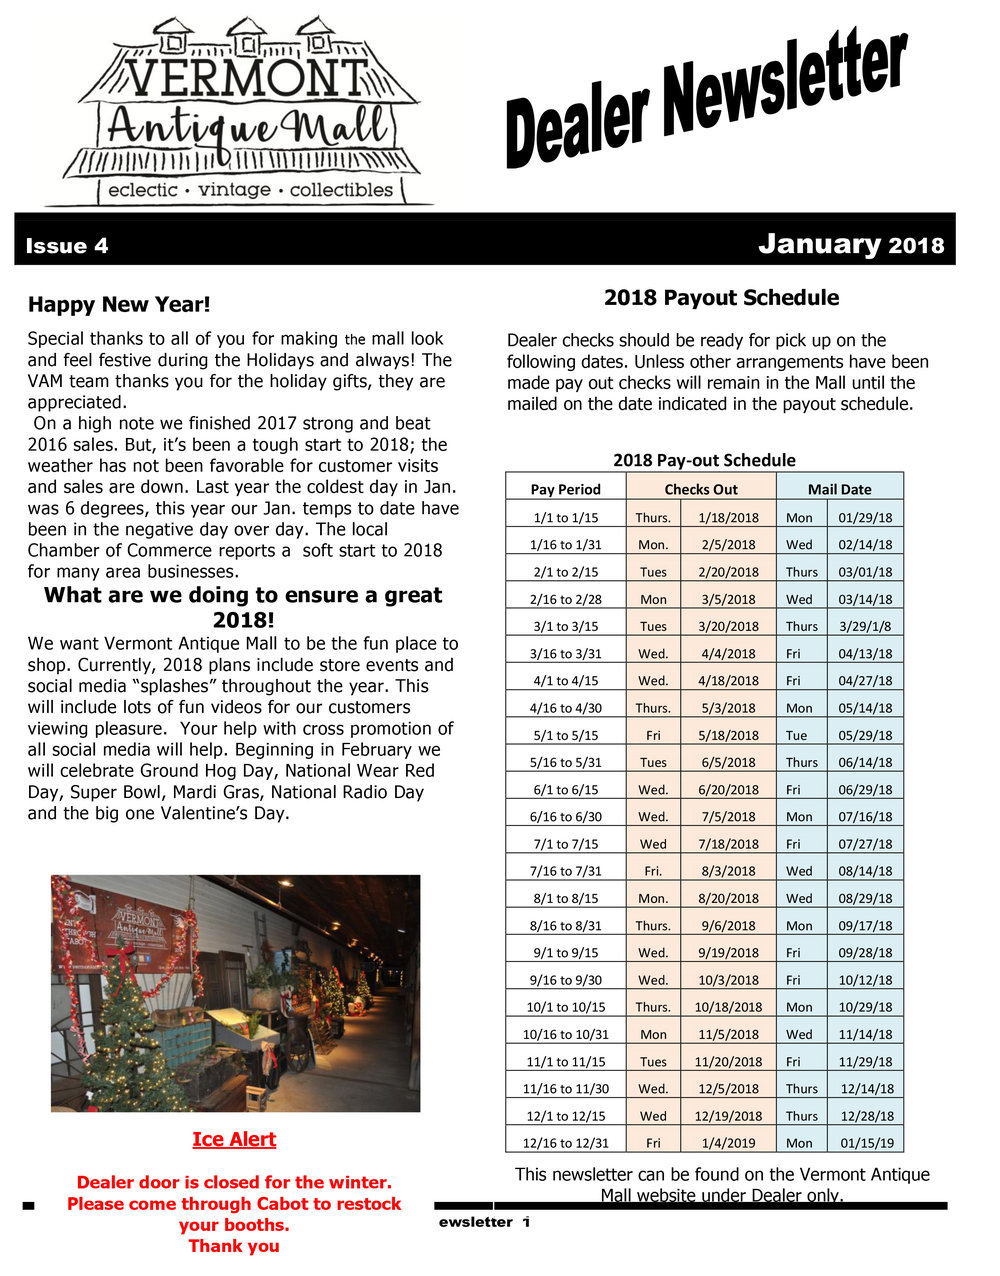 Vermont Antique Mall Dealer Newsletter Issue 4 Jan 2018.jpg